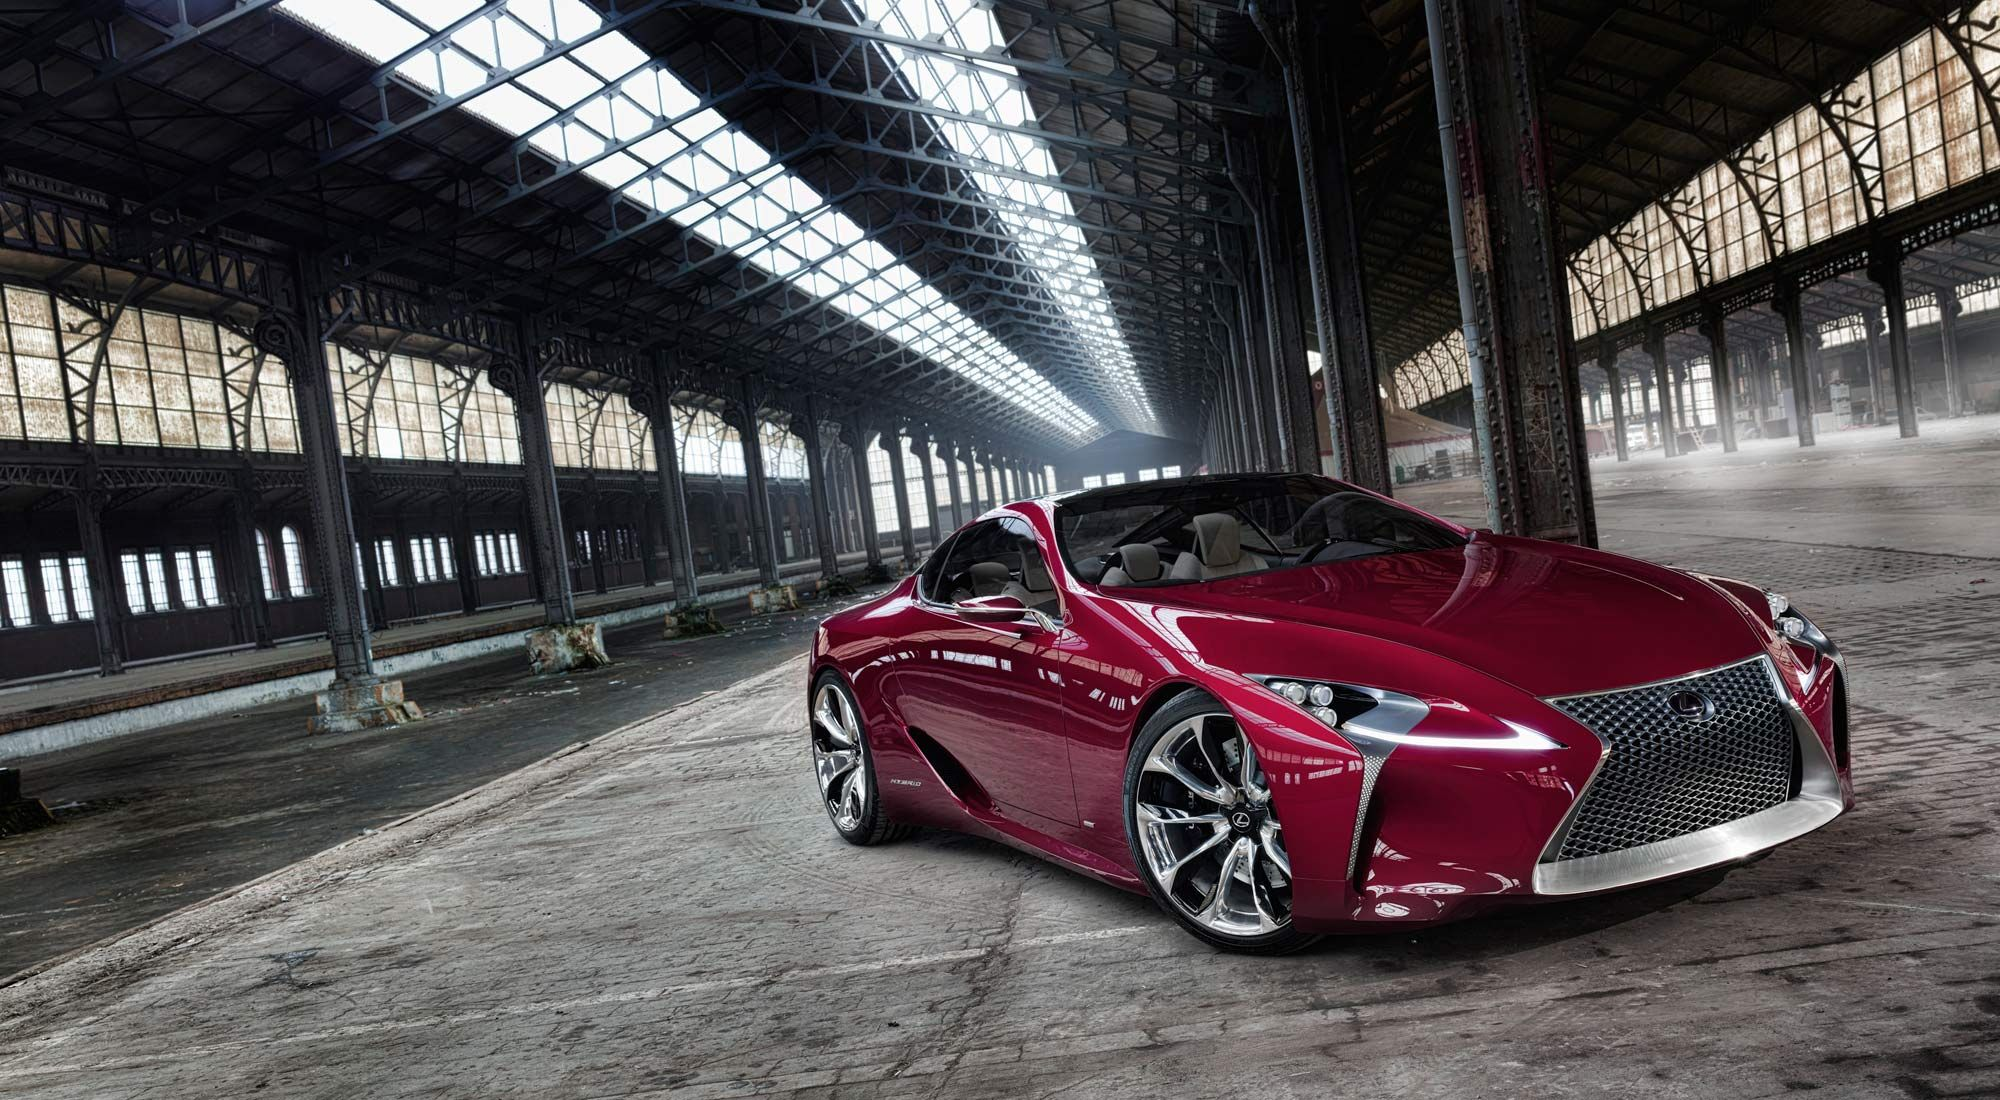 Lc 500 Lexus sport, Lexus sports car, Lexus cars